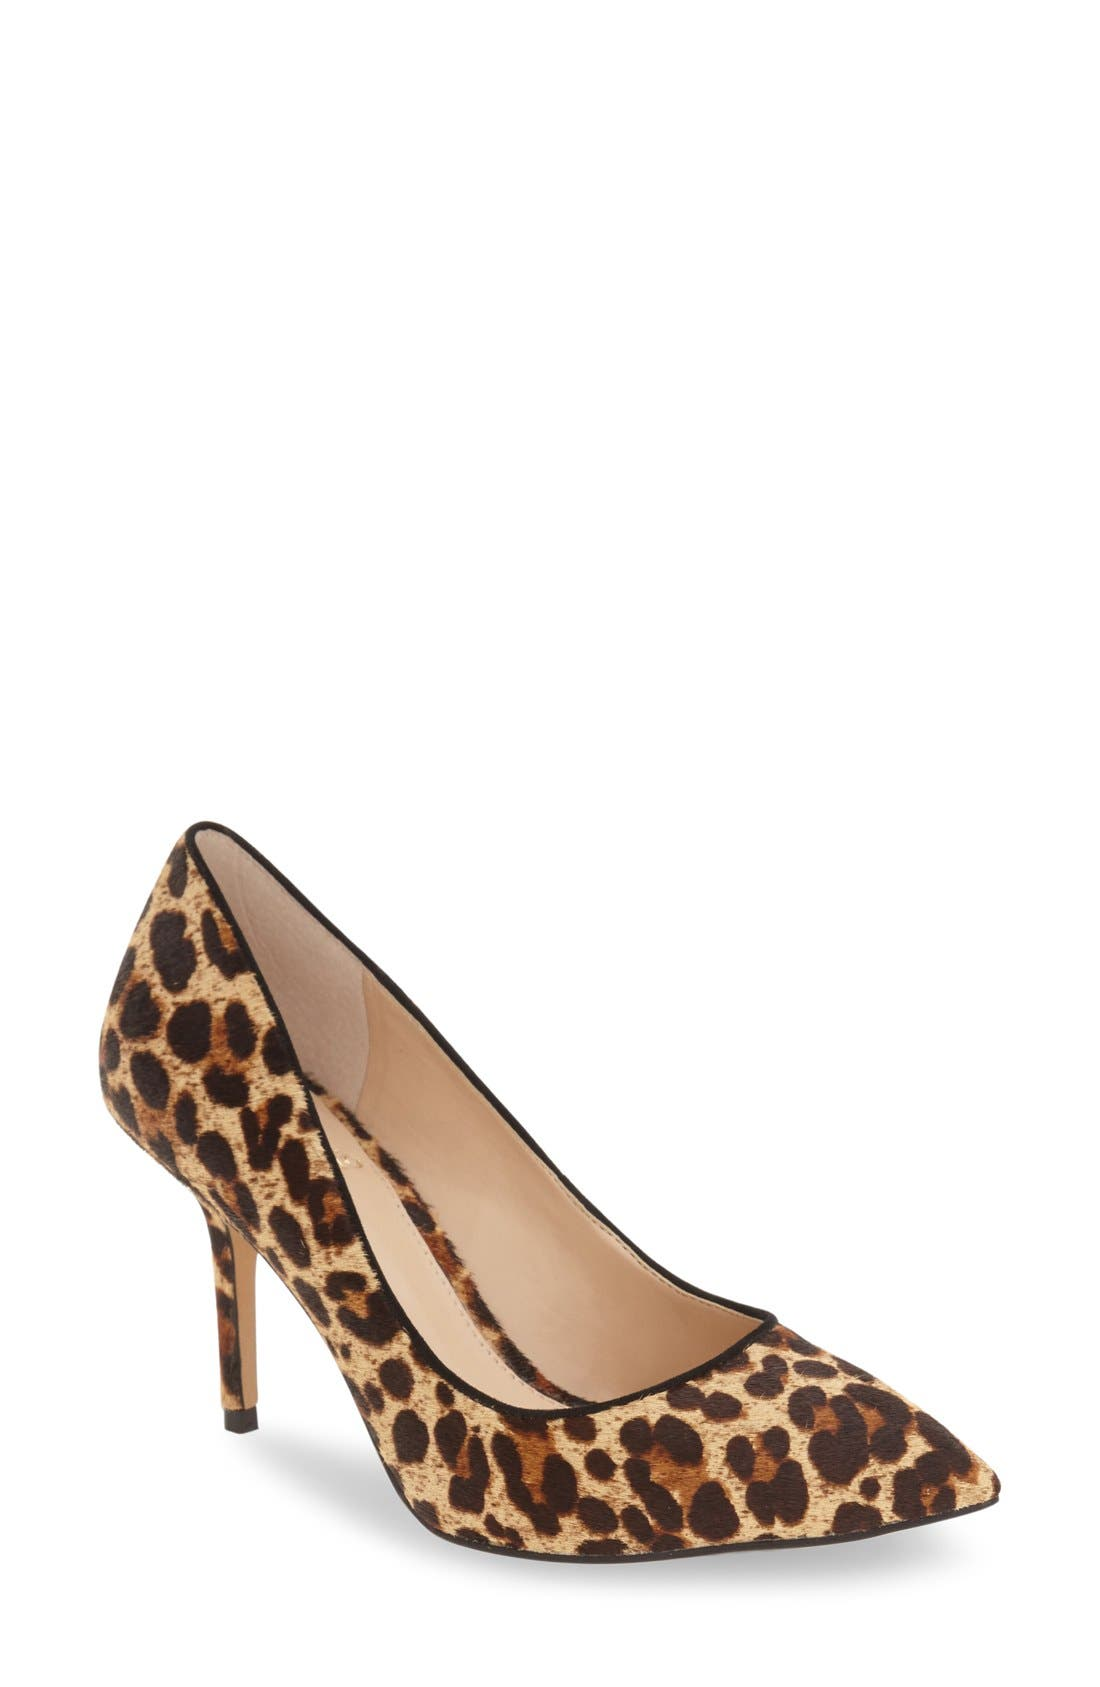 Main Image - Vince Camuto 'Salest' Genuine Calf Hair Pump (Women)